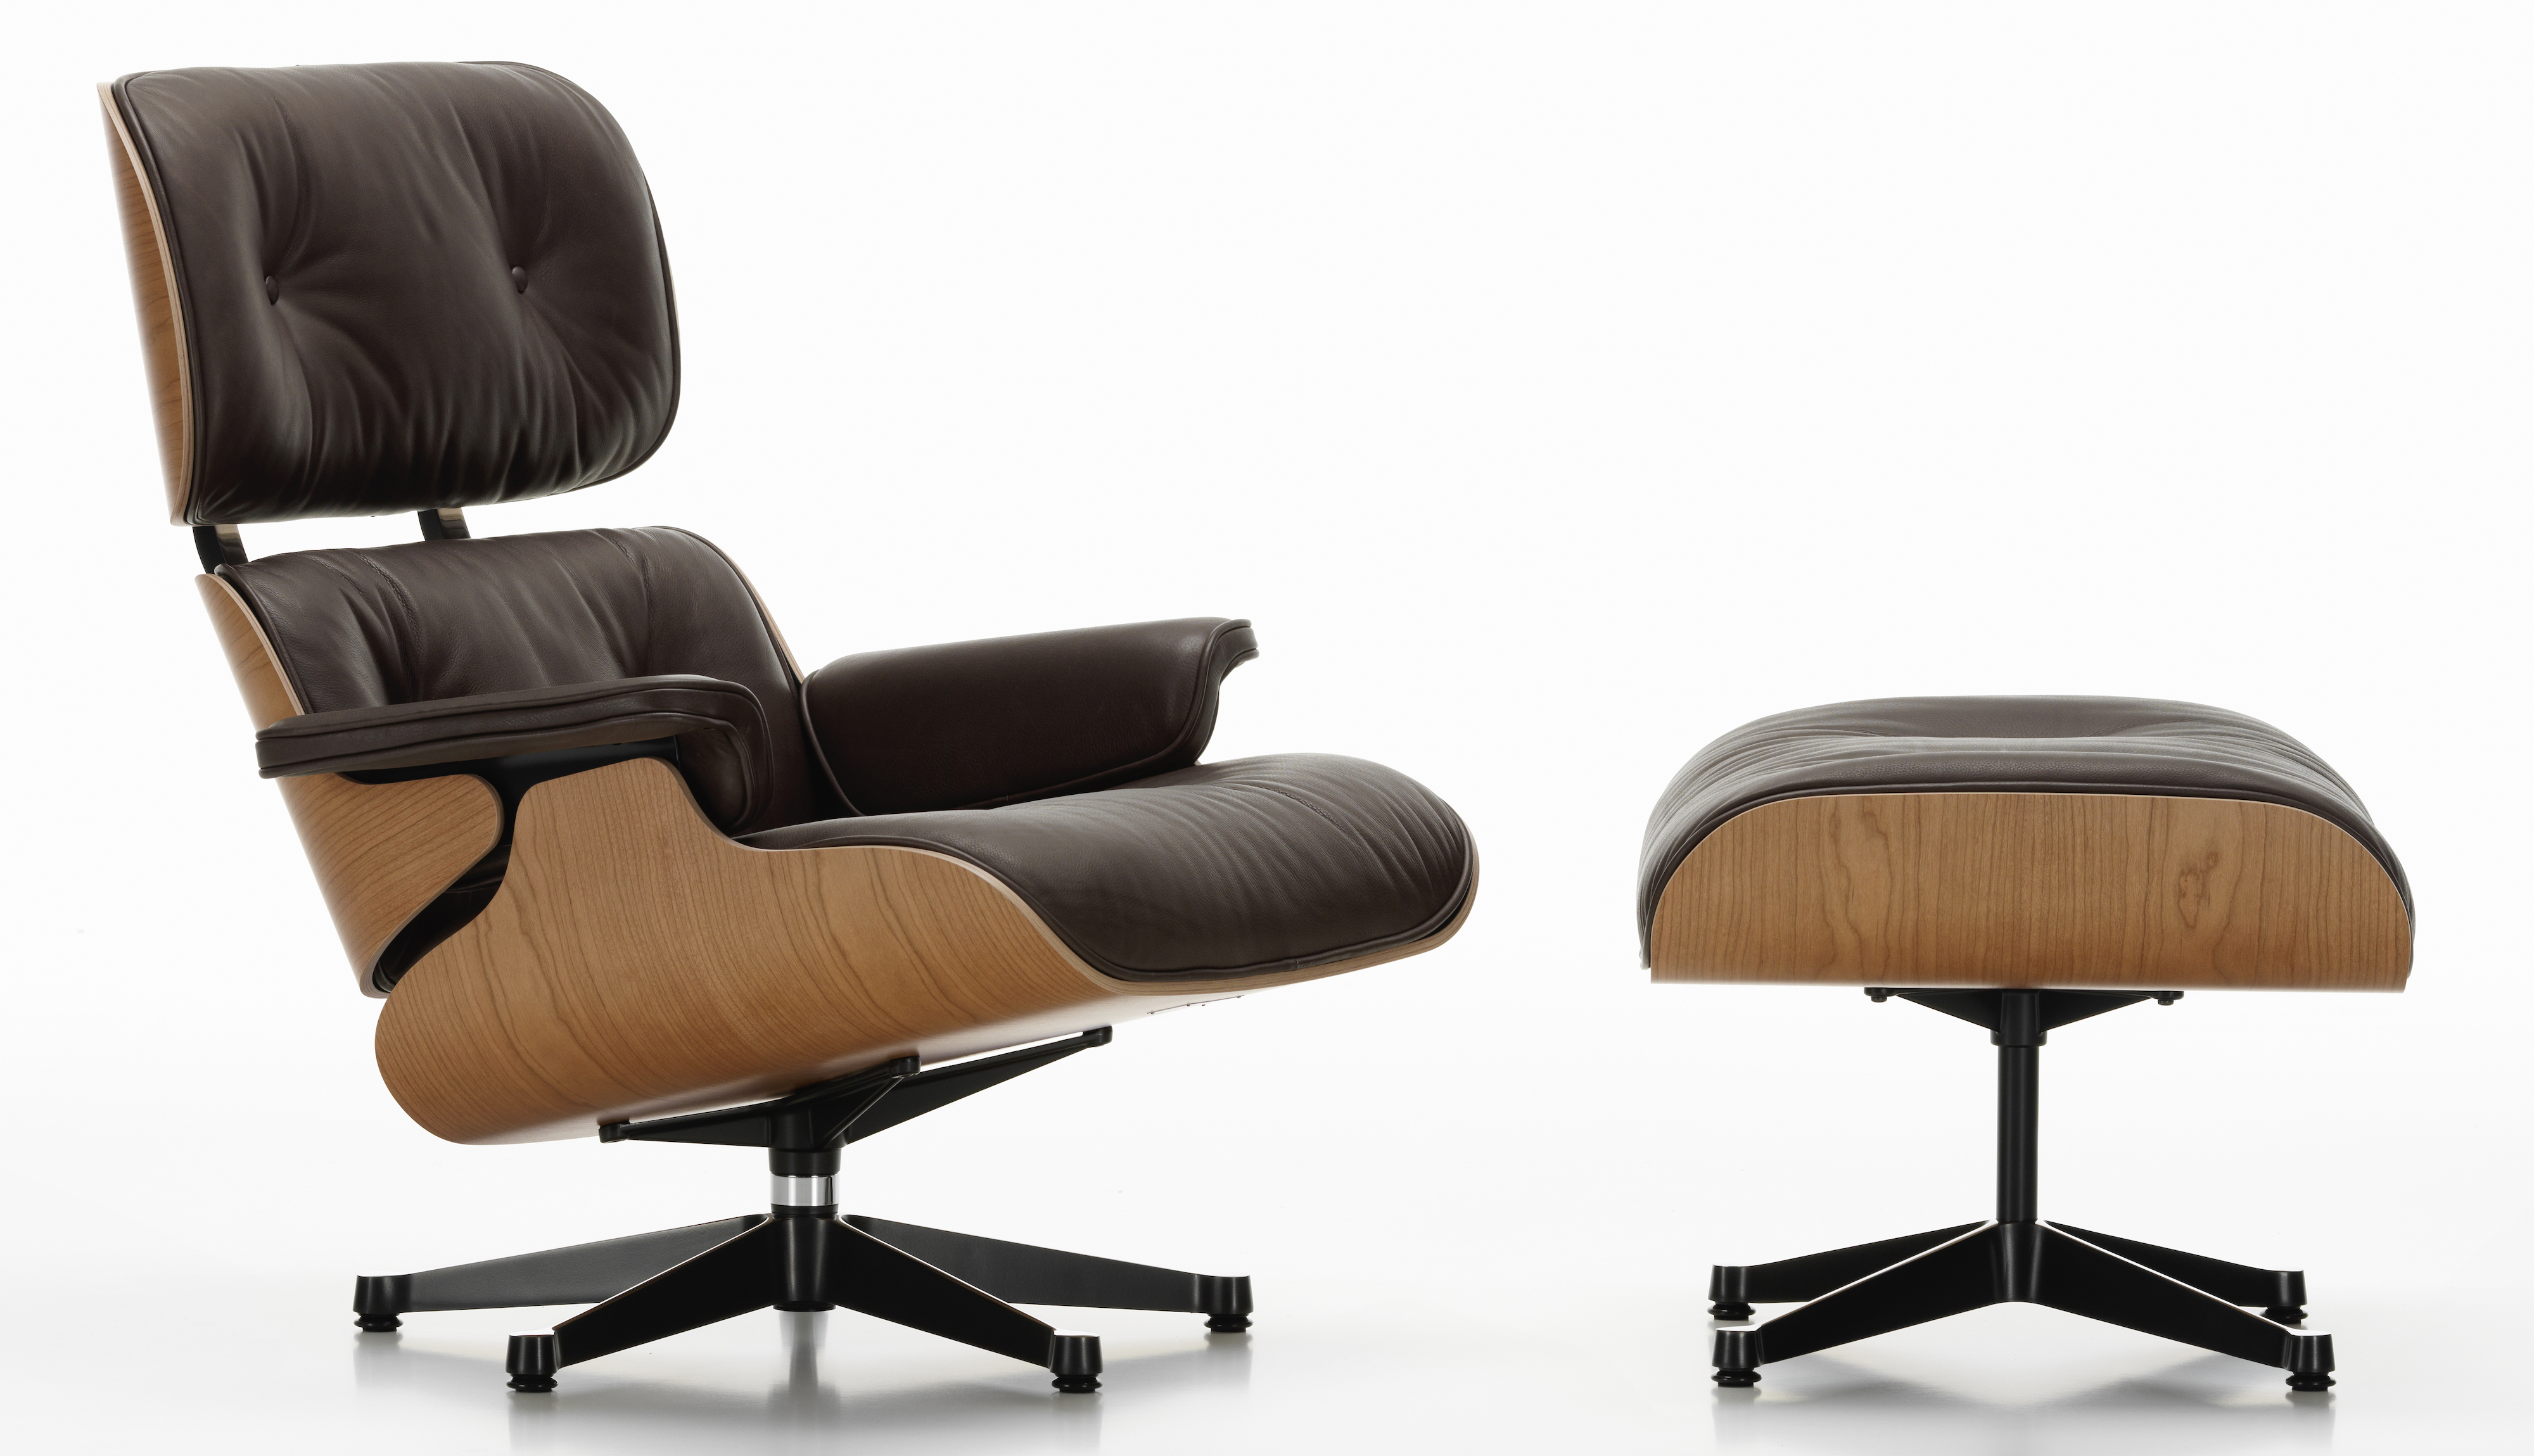 eames fauteuil CHARLES u0026 RAY EAMES